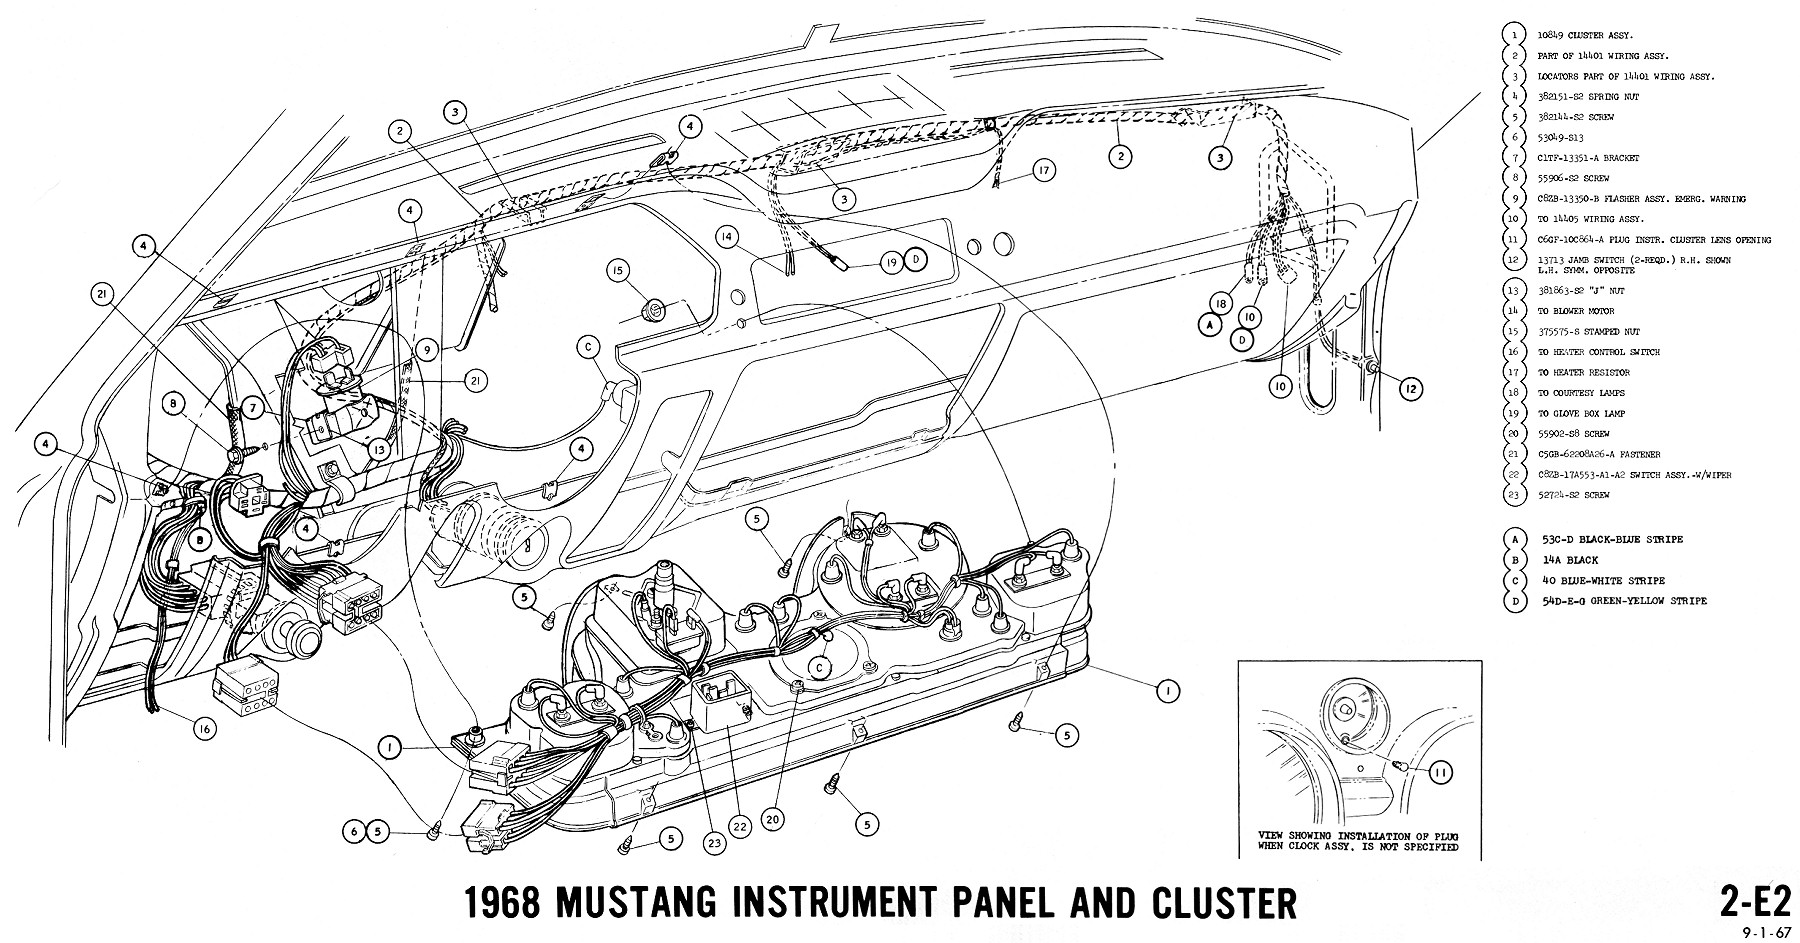 1968 mustang wiring diagram instruments 2 1968 mustang wiring diagram manual 68 mustang ignition wiring 1969 Mustang Wiring Diagram PDF at suagrazia.org